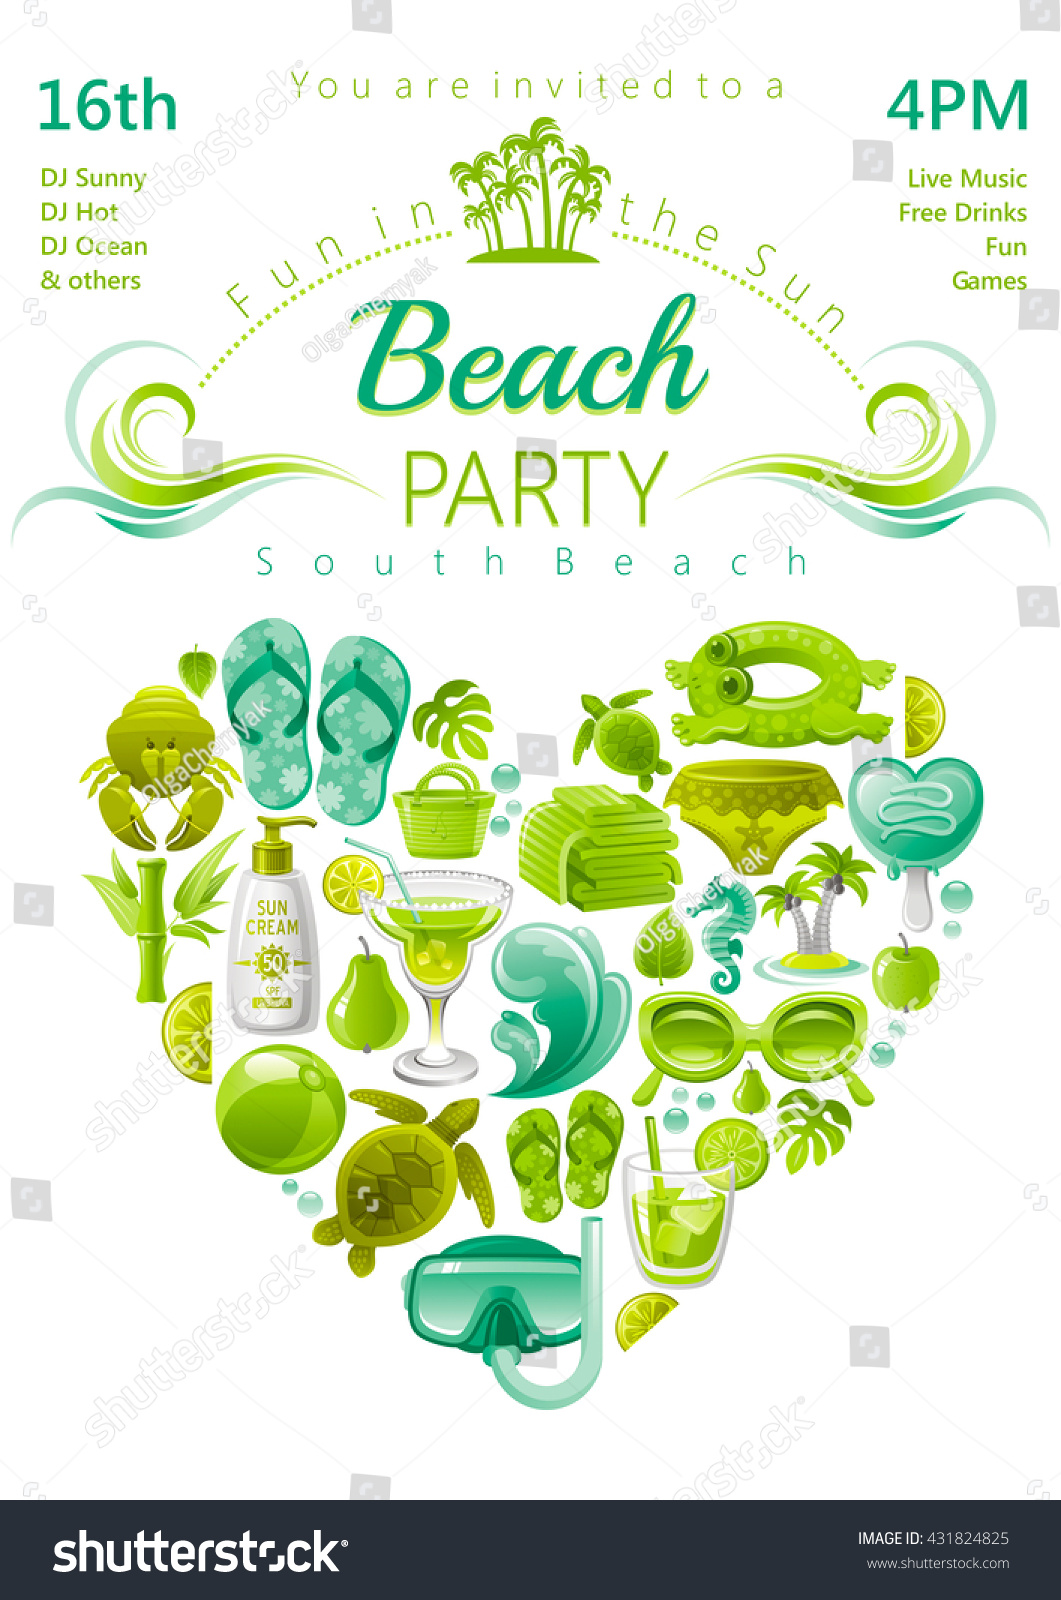 Beach Party Invite Choice Image - Party Invitations Ideas